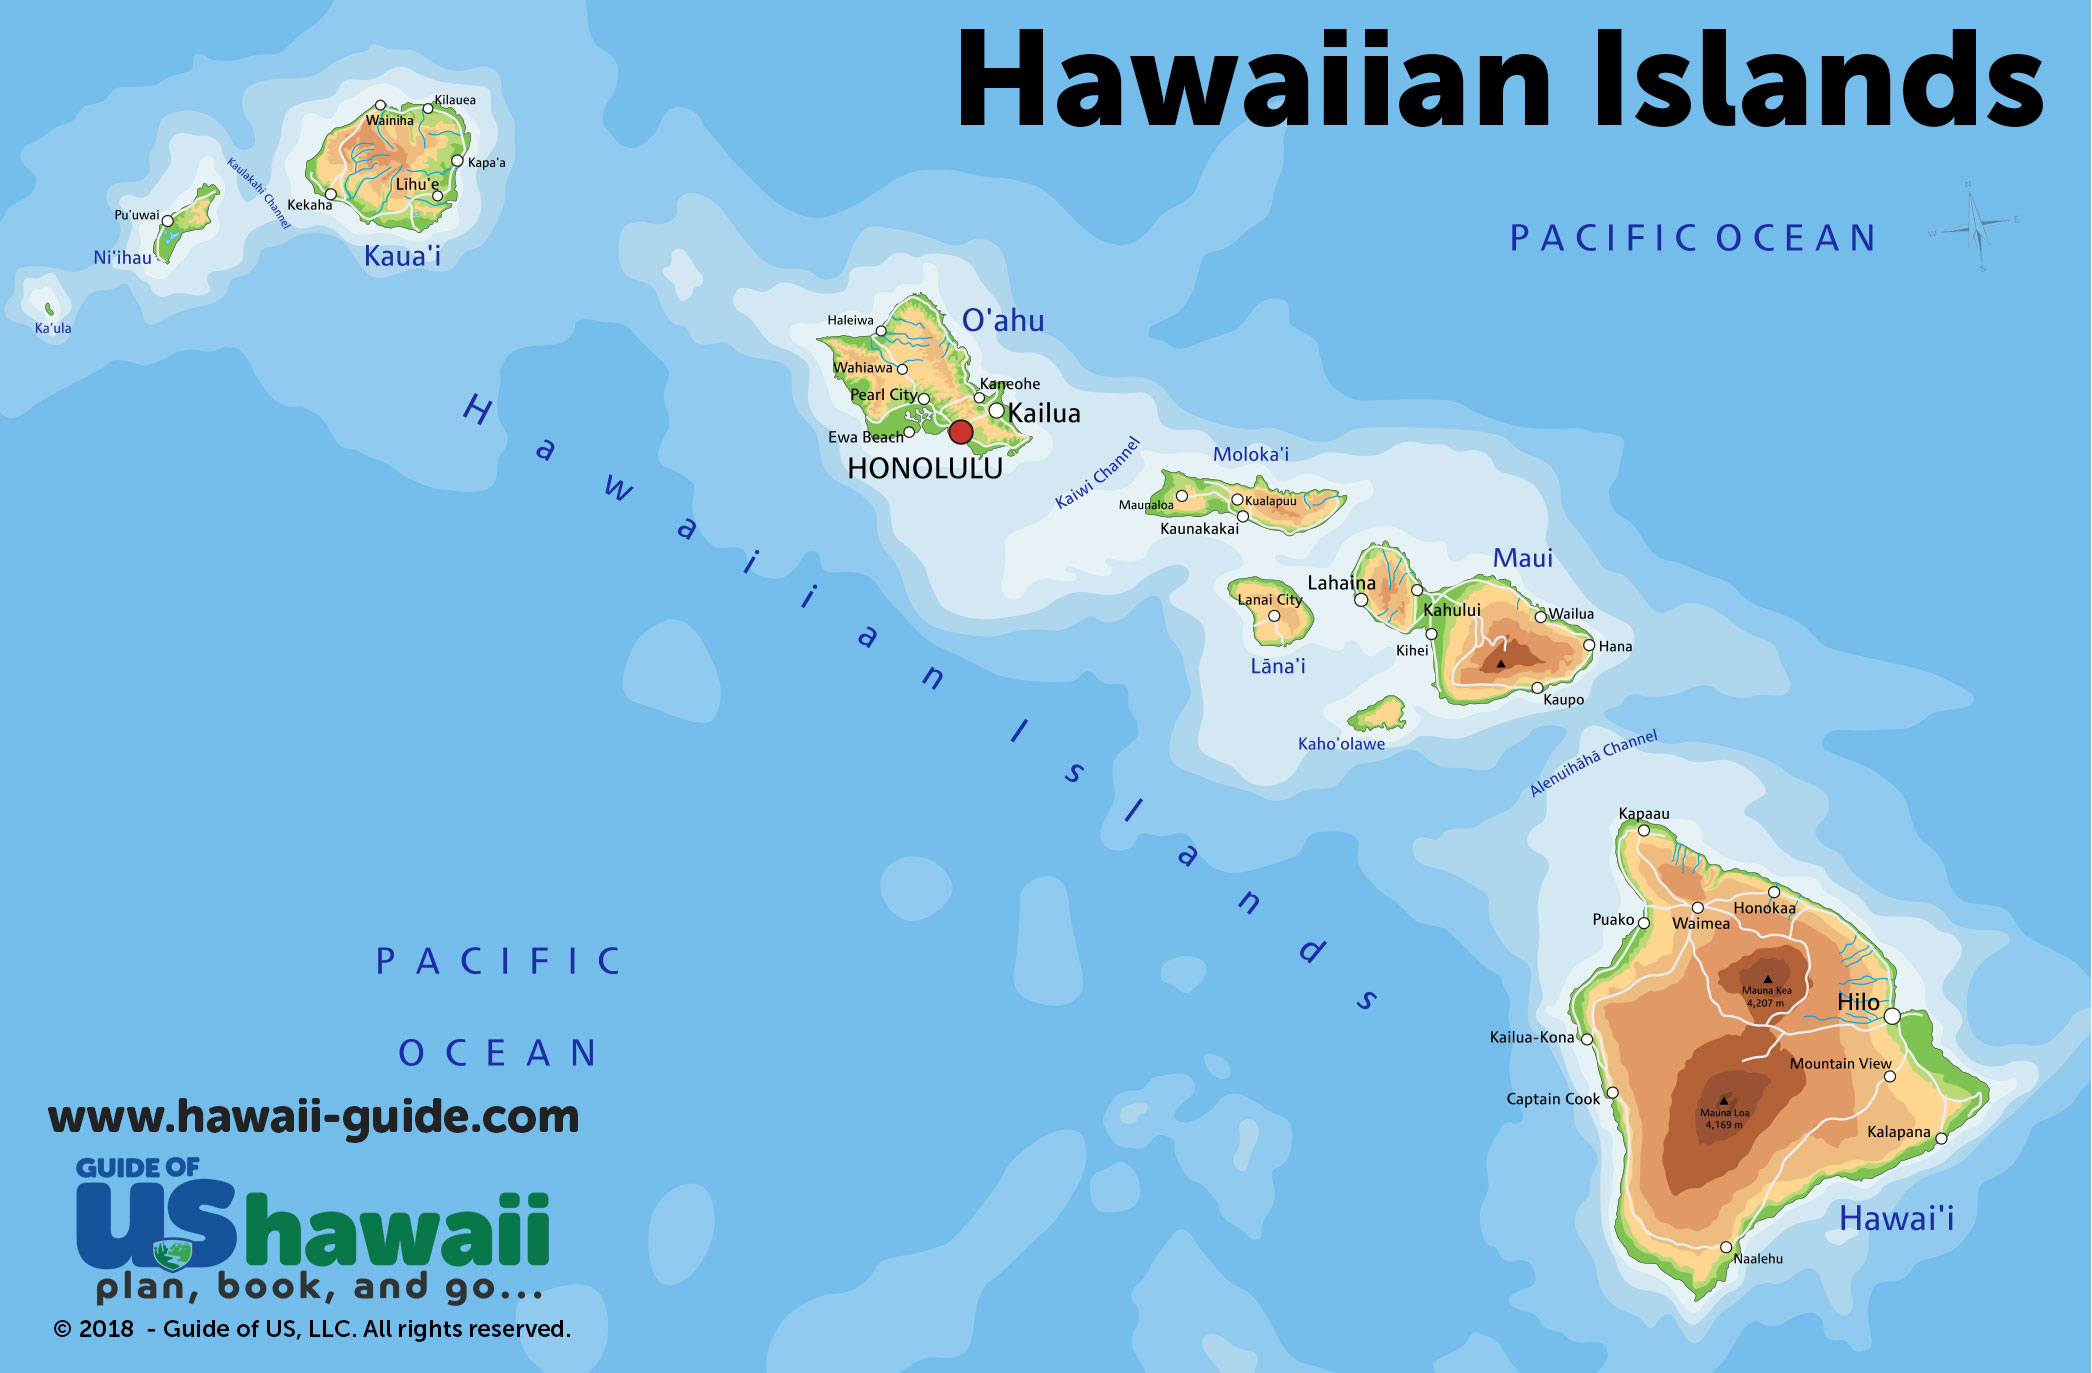 Hawaii On A Map Maps of Hawaii: Hawaiian Islands Map